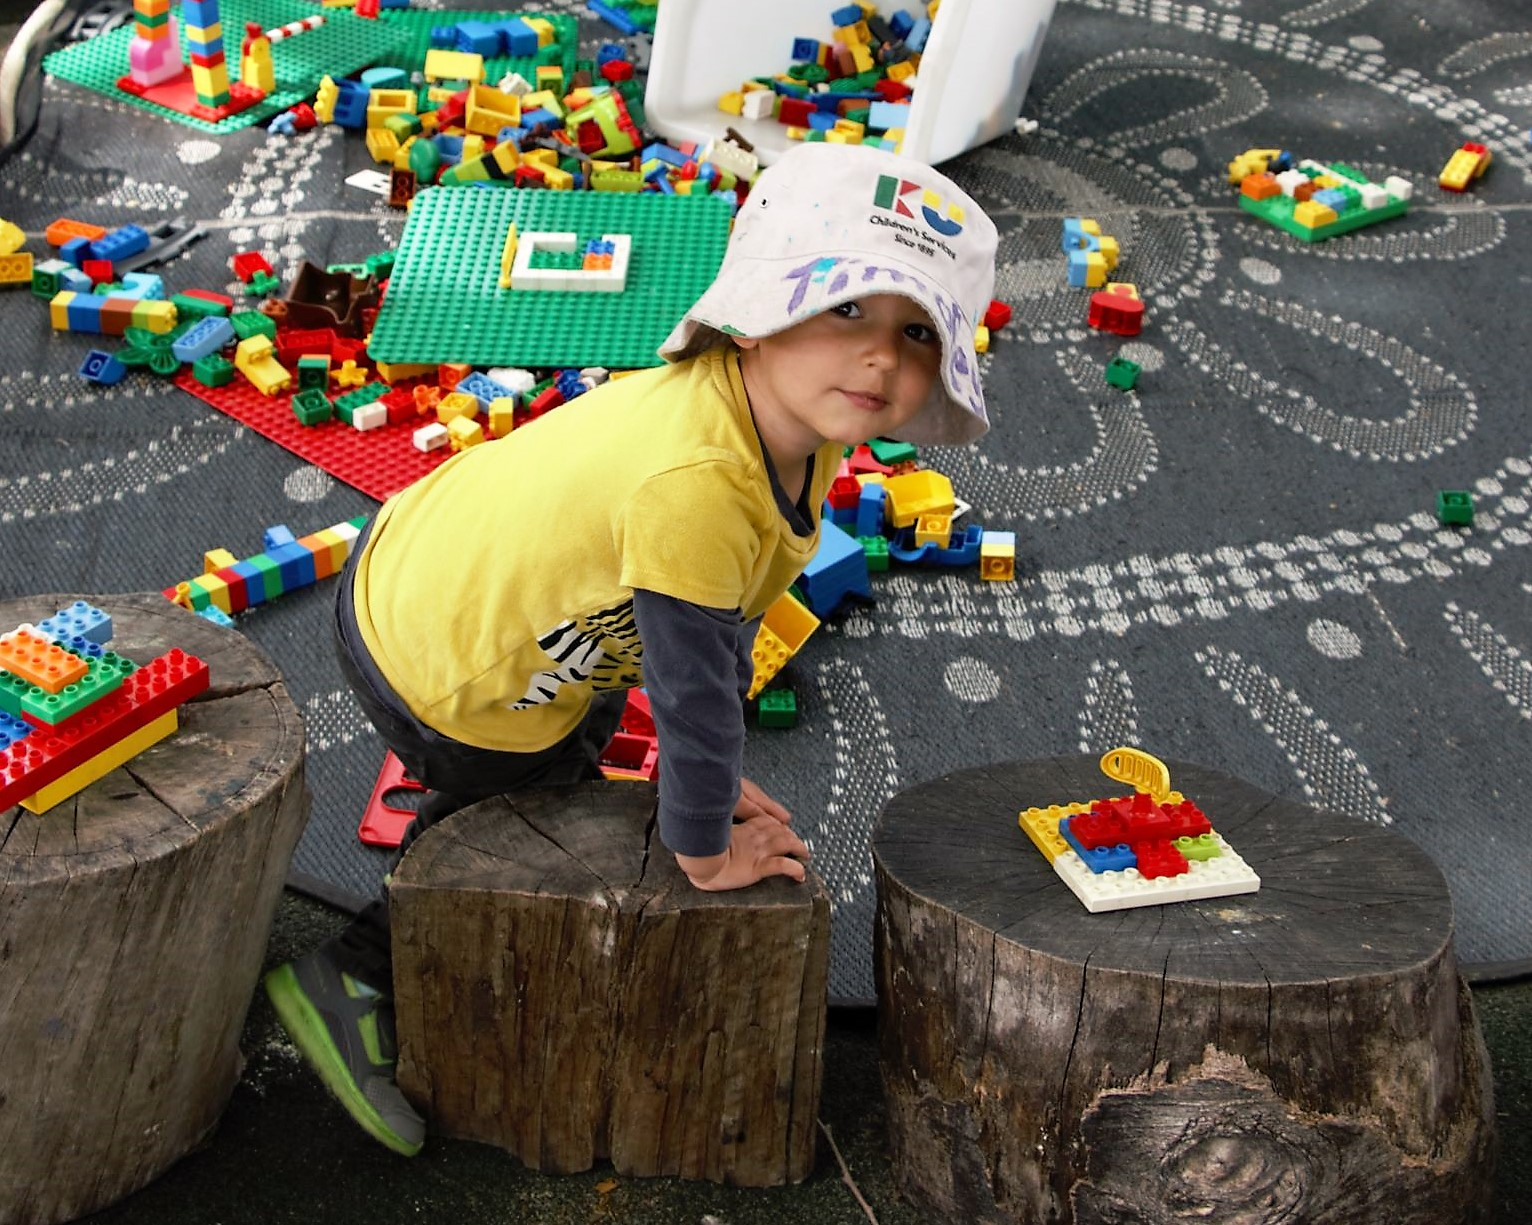 A boy playing with blocks at his child care in an outdoor environment